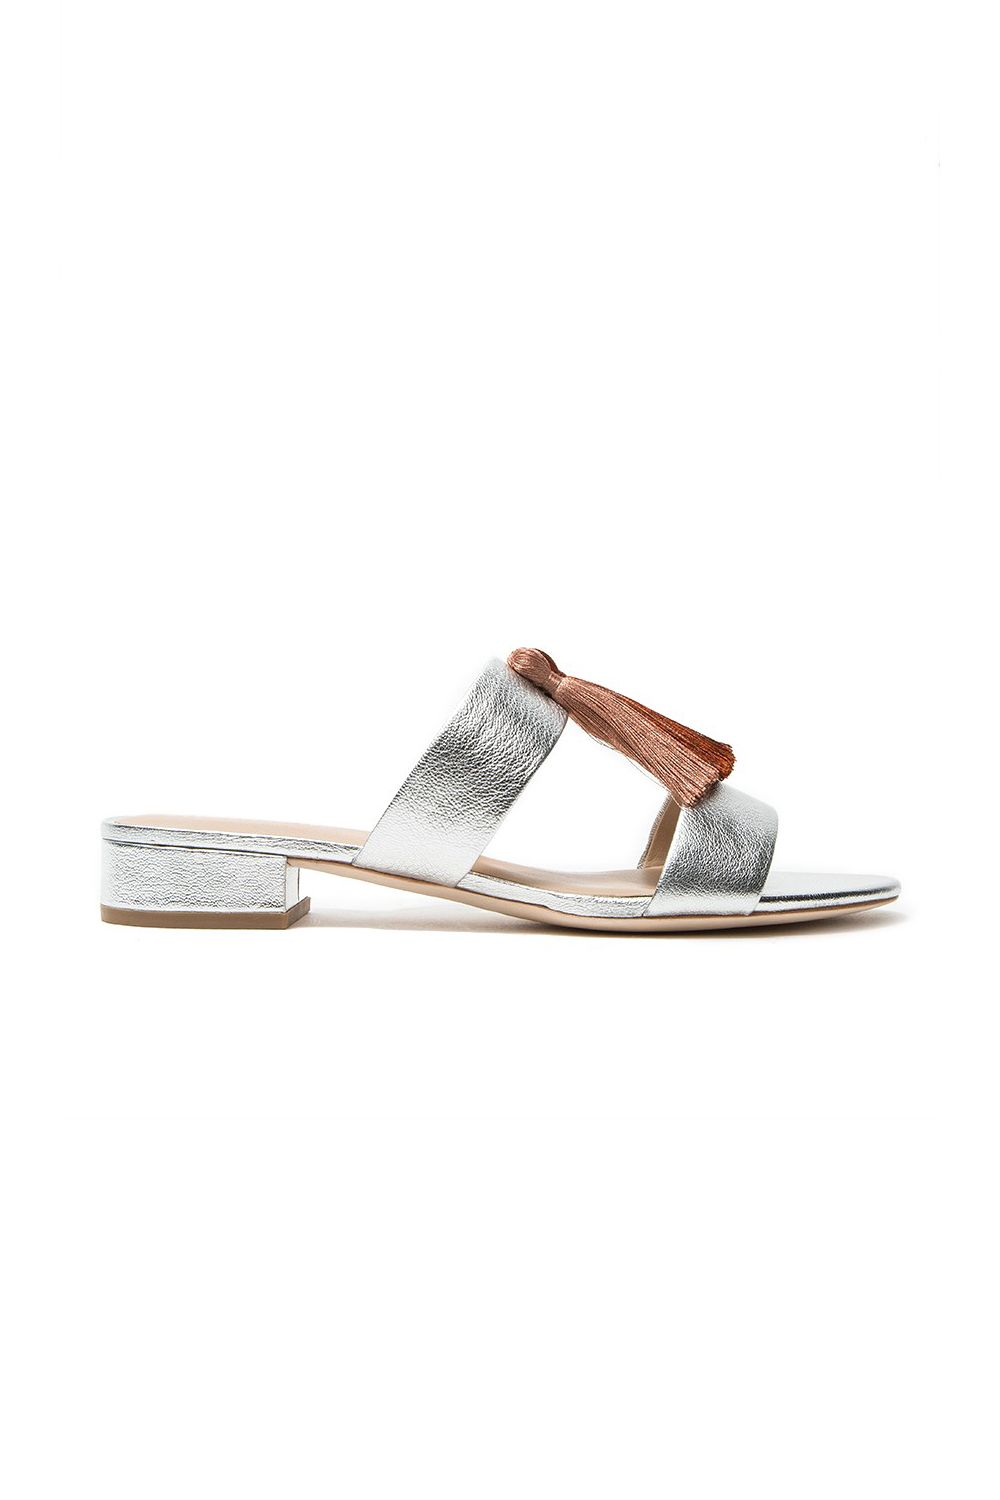 "<p>When your regular summer sandals feel too basic, put a tassel on it.&nbsp&#x3B;</p><p><strong data-redactor-tag=""strong"" data-verified=""redactor"">Loeffler Randal Rubie Sandal, $251&#x3B; <a href=""http://needsupply.com/womens/brands/loeffler-randall/rubie-in-silver-pink-clay.html"" target=""_blank"" data-tracking-id=""recirc-text-link"">needsupply.com</a>.</strong></p>"